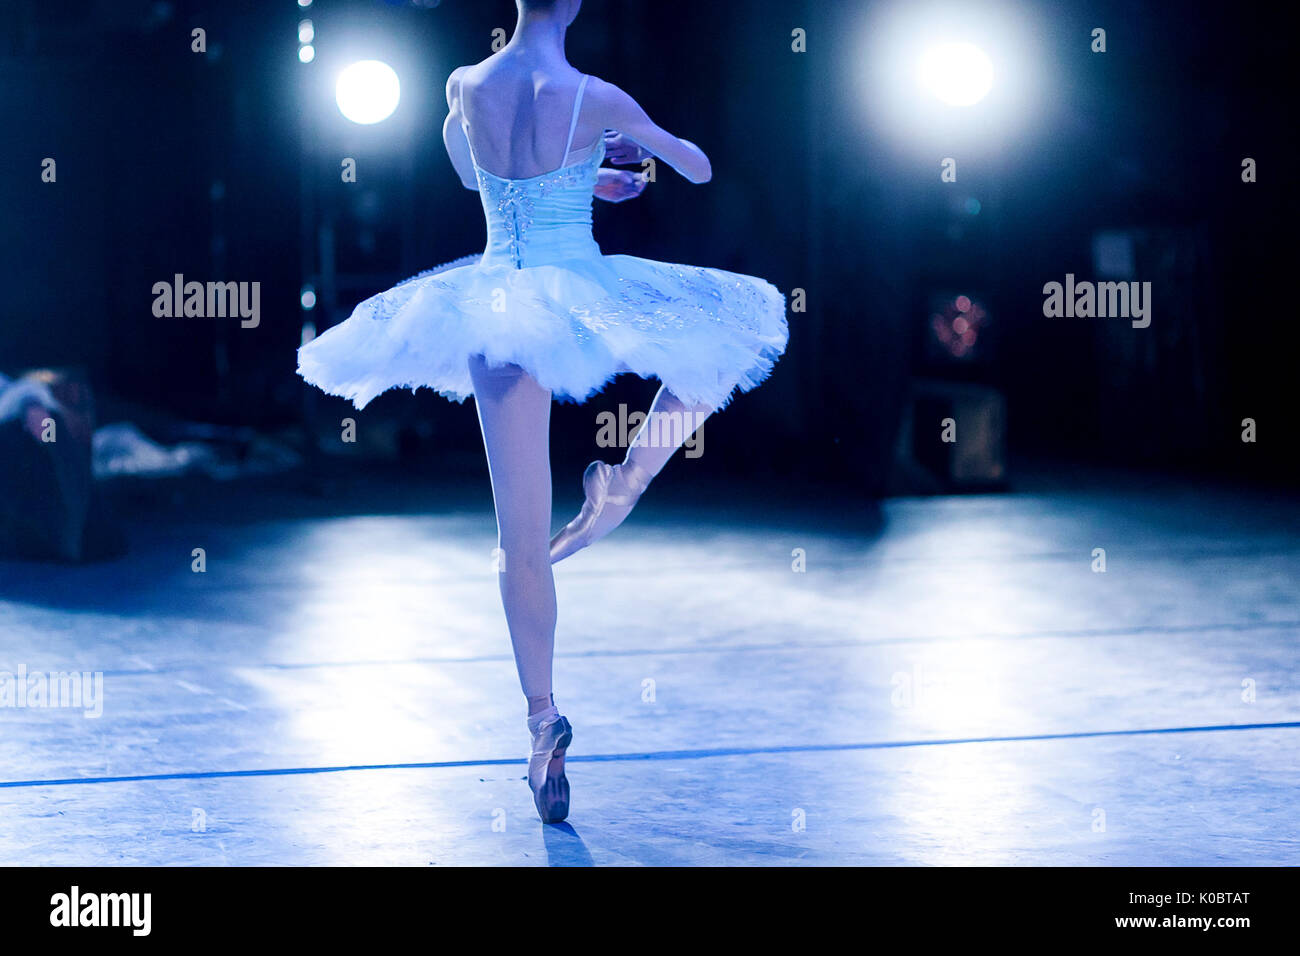 glory, dream, choreography concept. slender silhouette of female ballet dancer in the stage lights wearing beautiful tutu turning around like statuette in music box - Stock Image